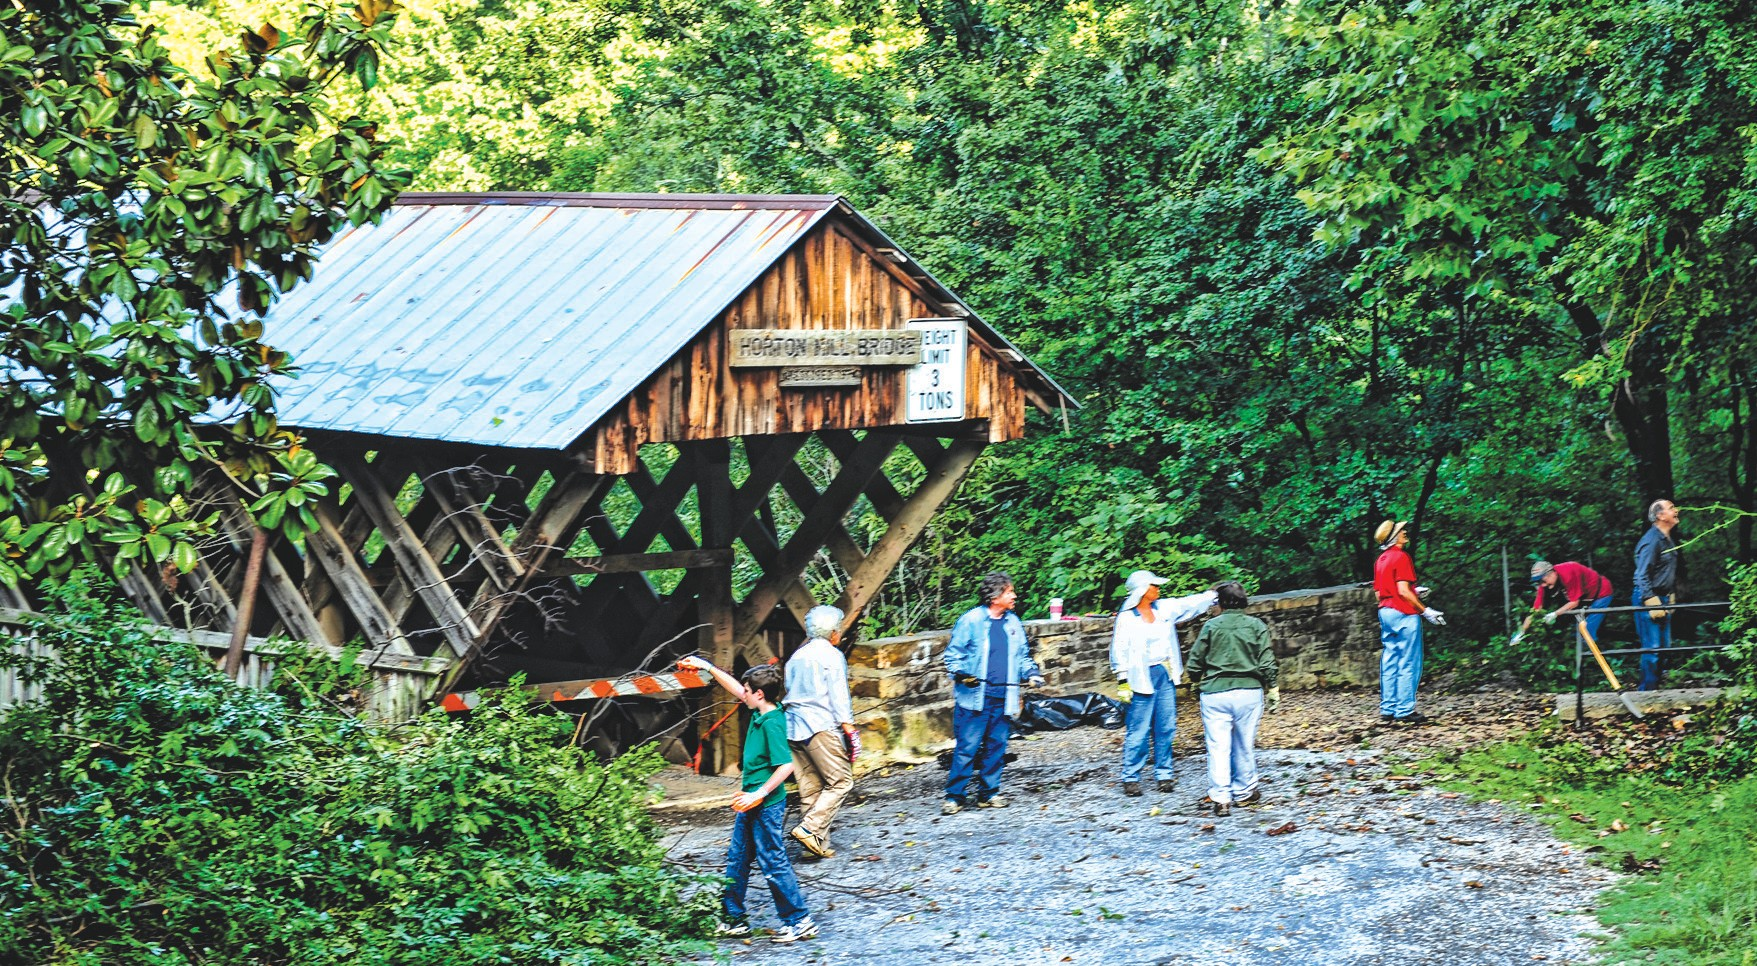 In an effort to keep one of Blount County's signature assets presentable, approximately 20 people showed up last Saturday to clean up around the Horton Mill Bridge. The cleanup project was organized by Friends of the Covered Bridges of Blount County, a group dedicated to preserving and restoring the county's three remaining covered bridges. This group has gained support from local government along with the Blount County Historical Society, Memorial Museum, and the Blount County Master Gardeners Association. For more information about the group, go to www.friendsofthecoveredbridgesofblountcounty.org or call Sharon Murphree at 687-1572. The next cleanup is tentatively set for Swann Bridge with a date and time to be announced later. –Rob Rice